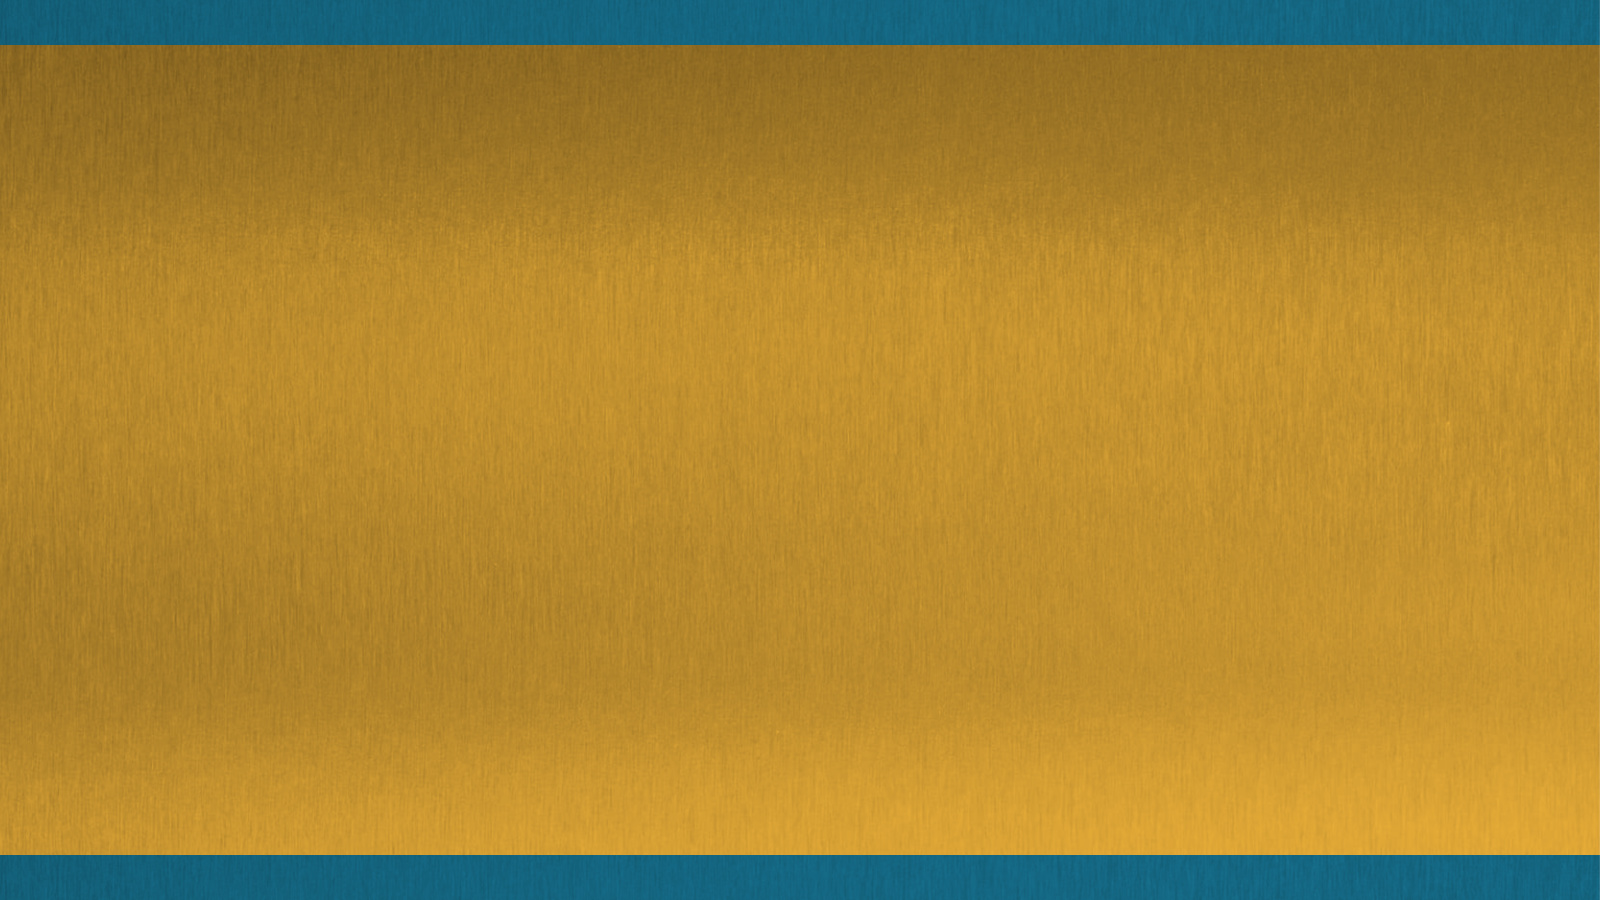 Gold background with peacock border